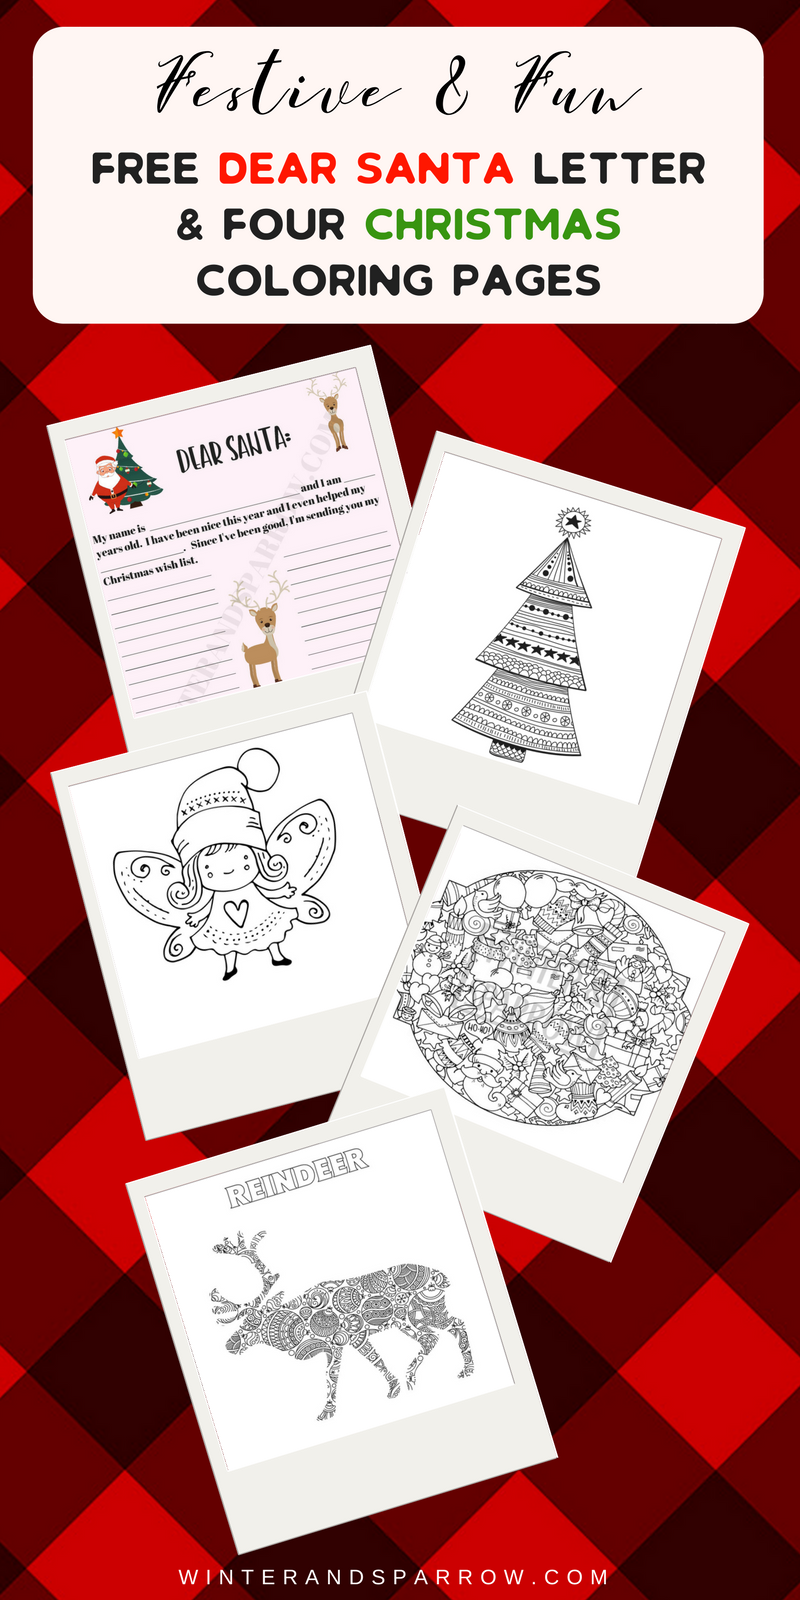 Dear Santa Coloring With Free Letter Four Christmas Pages